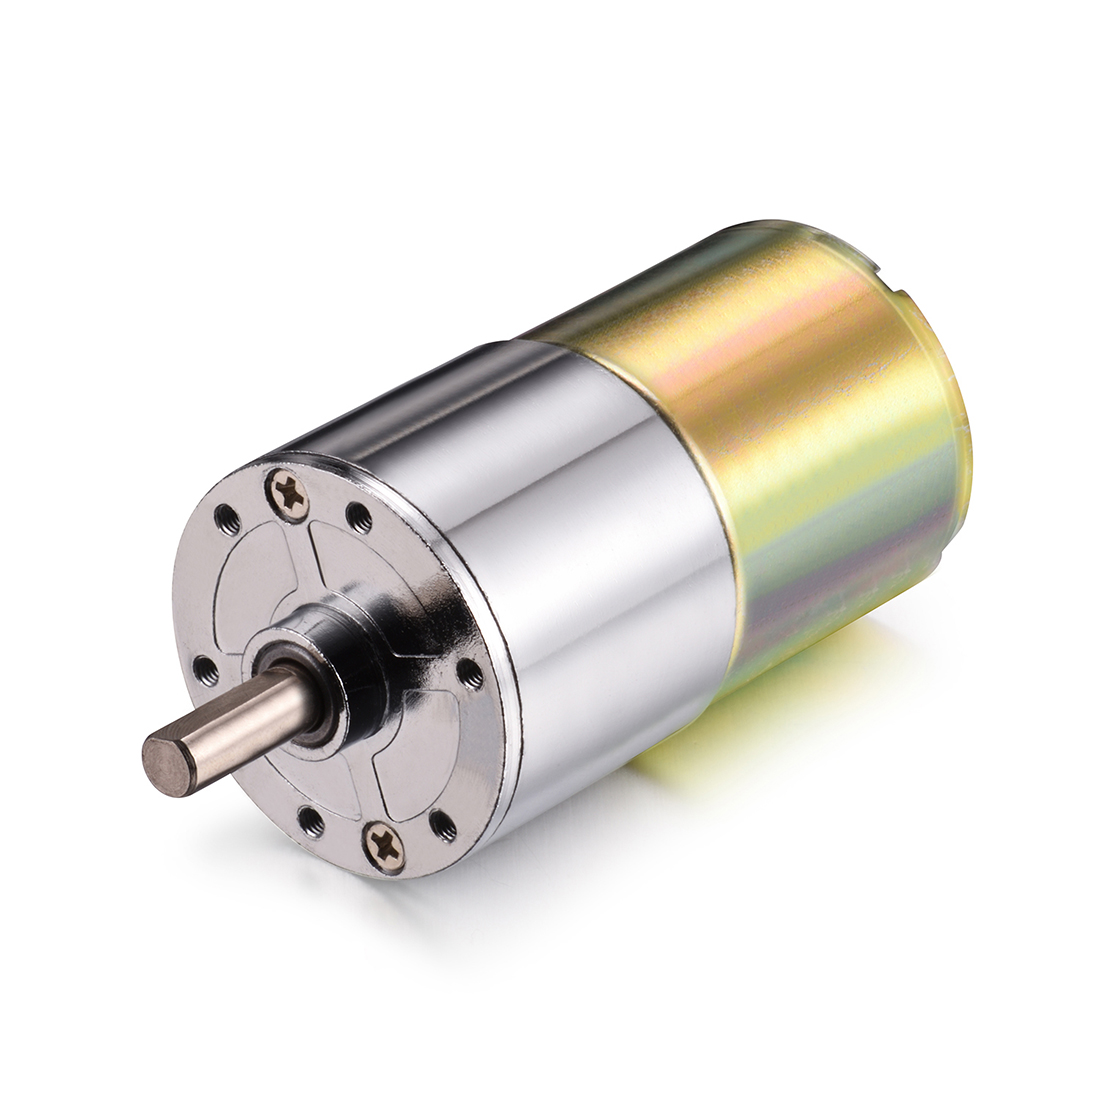 DC 24V 830RPM Micro Gear Box Motor Speed Reduction Electric Gearbox Centric Output Shaft